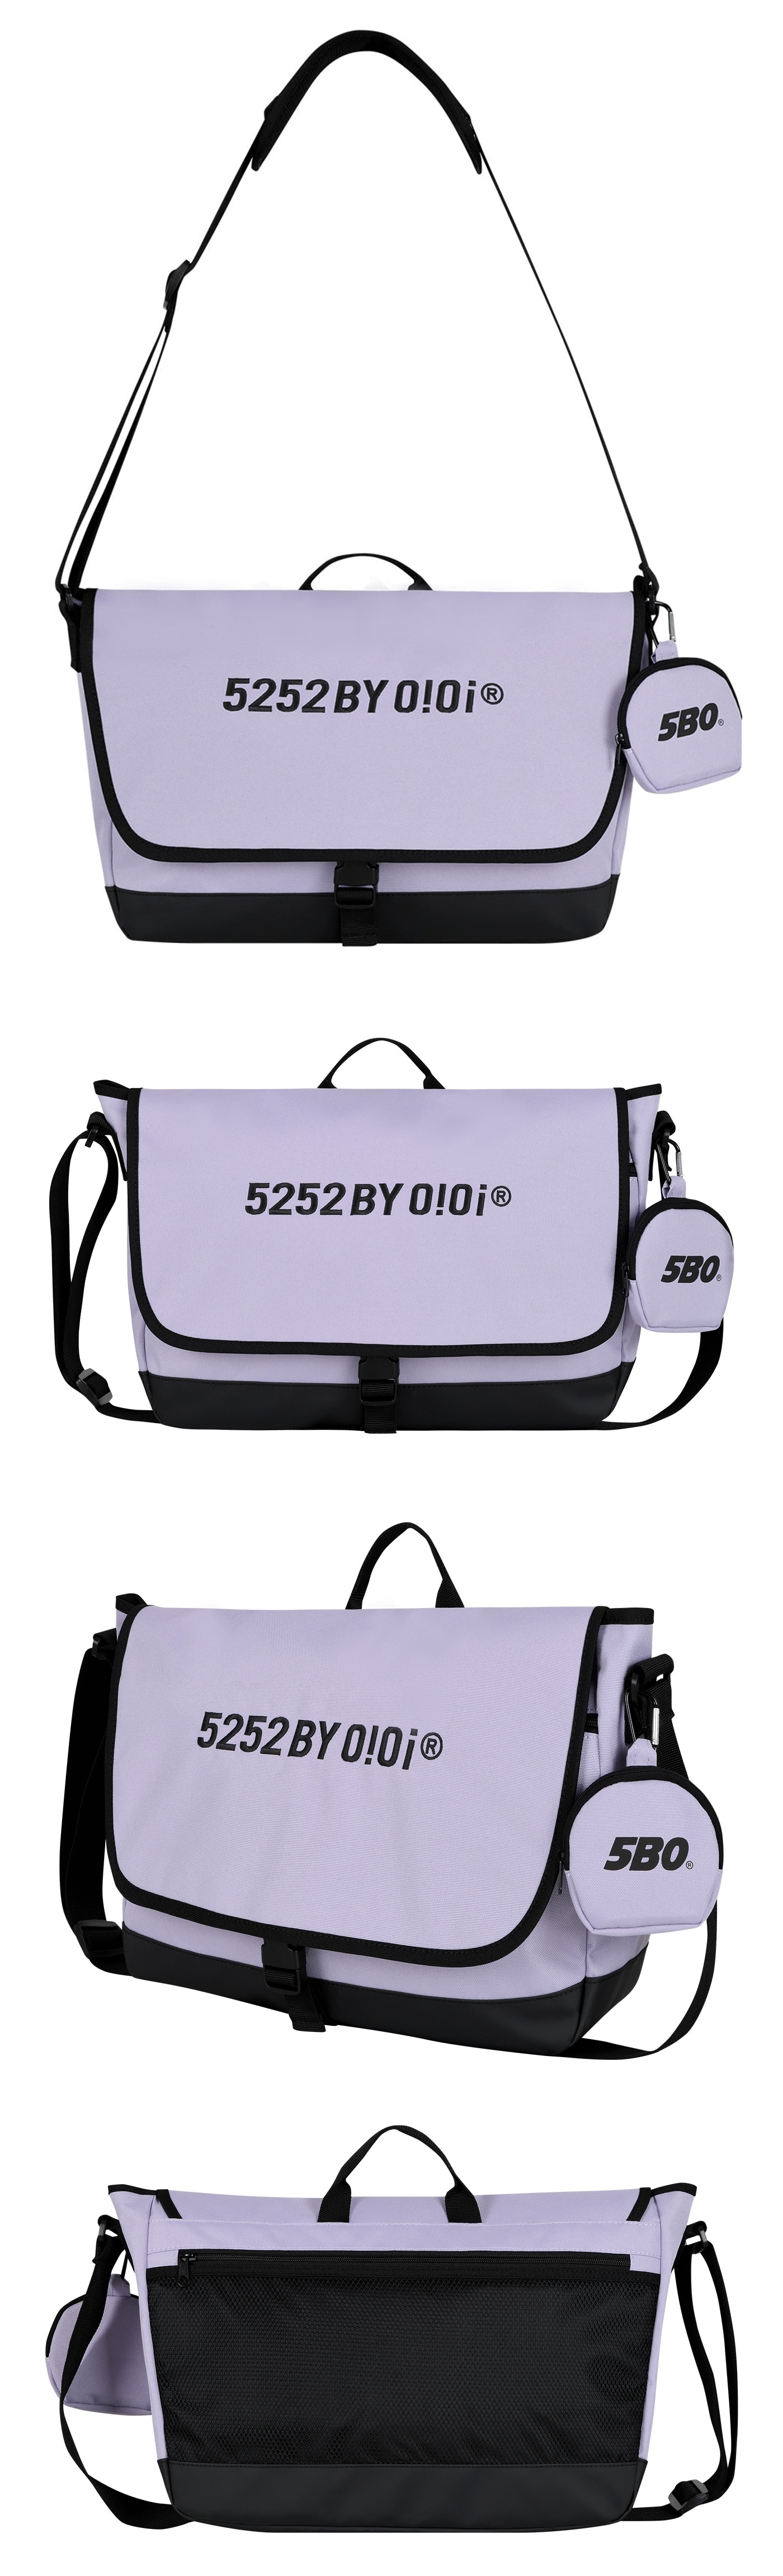 MINI_POCKET_SET_MESSENGER_BAG_PURPLE2_01-vert.jpg